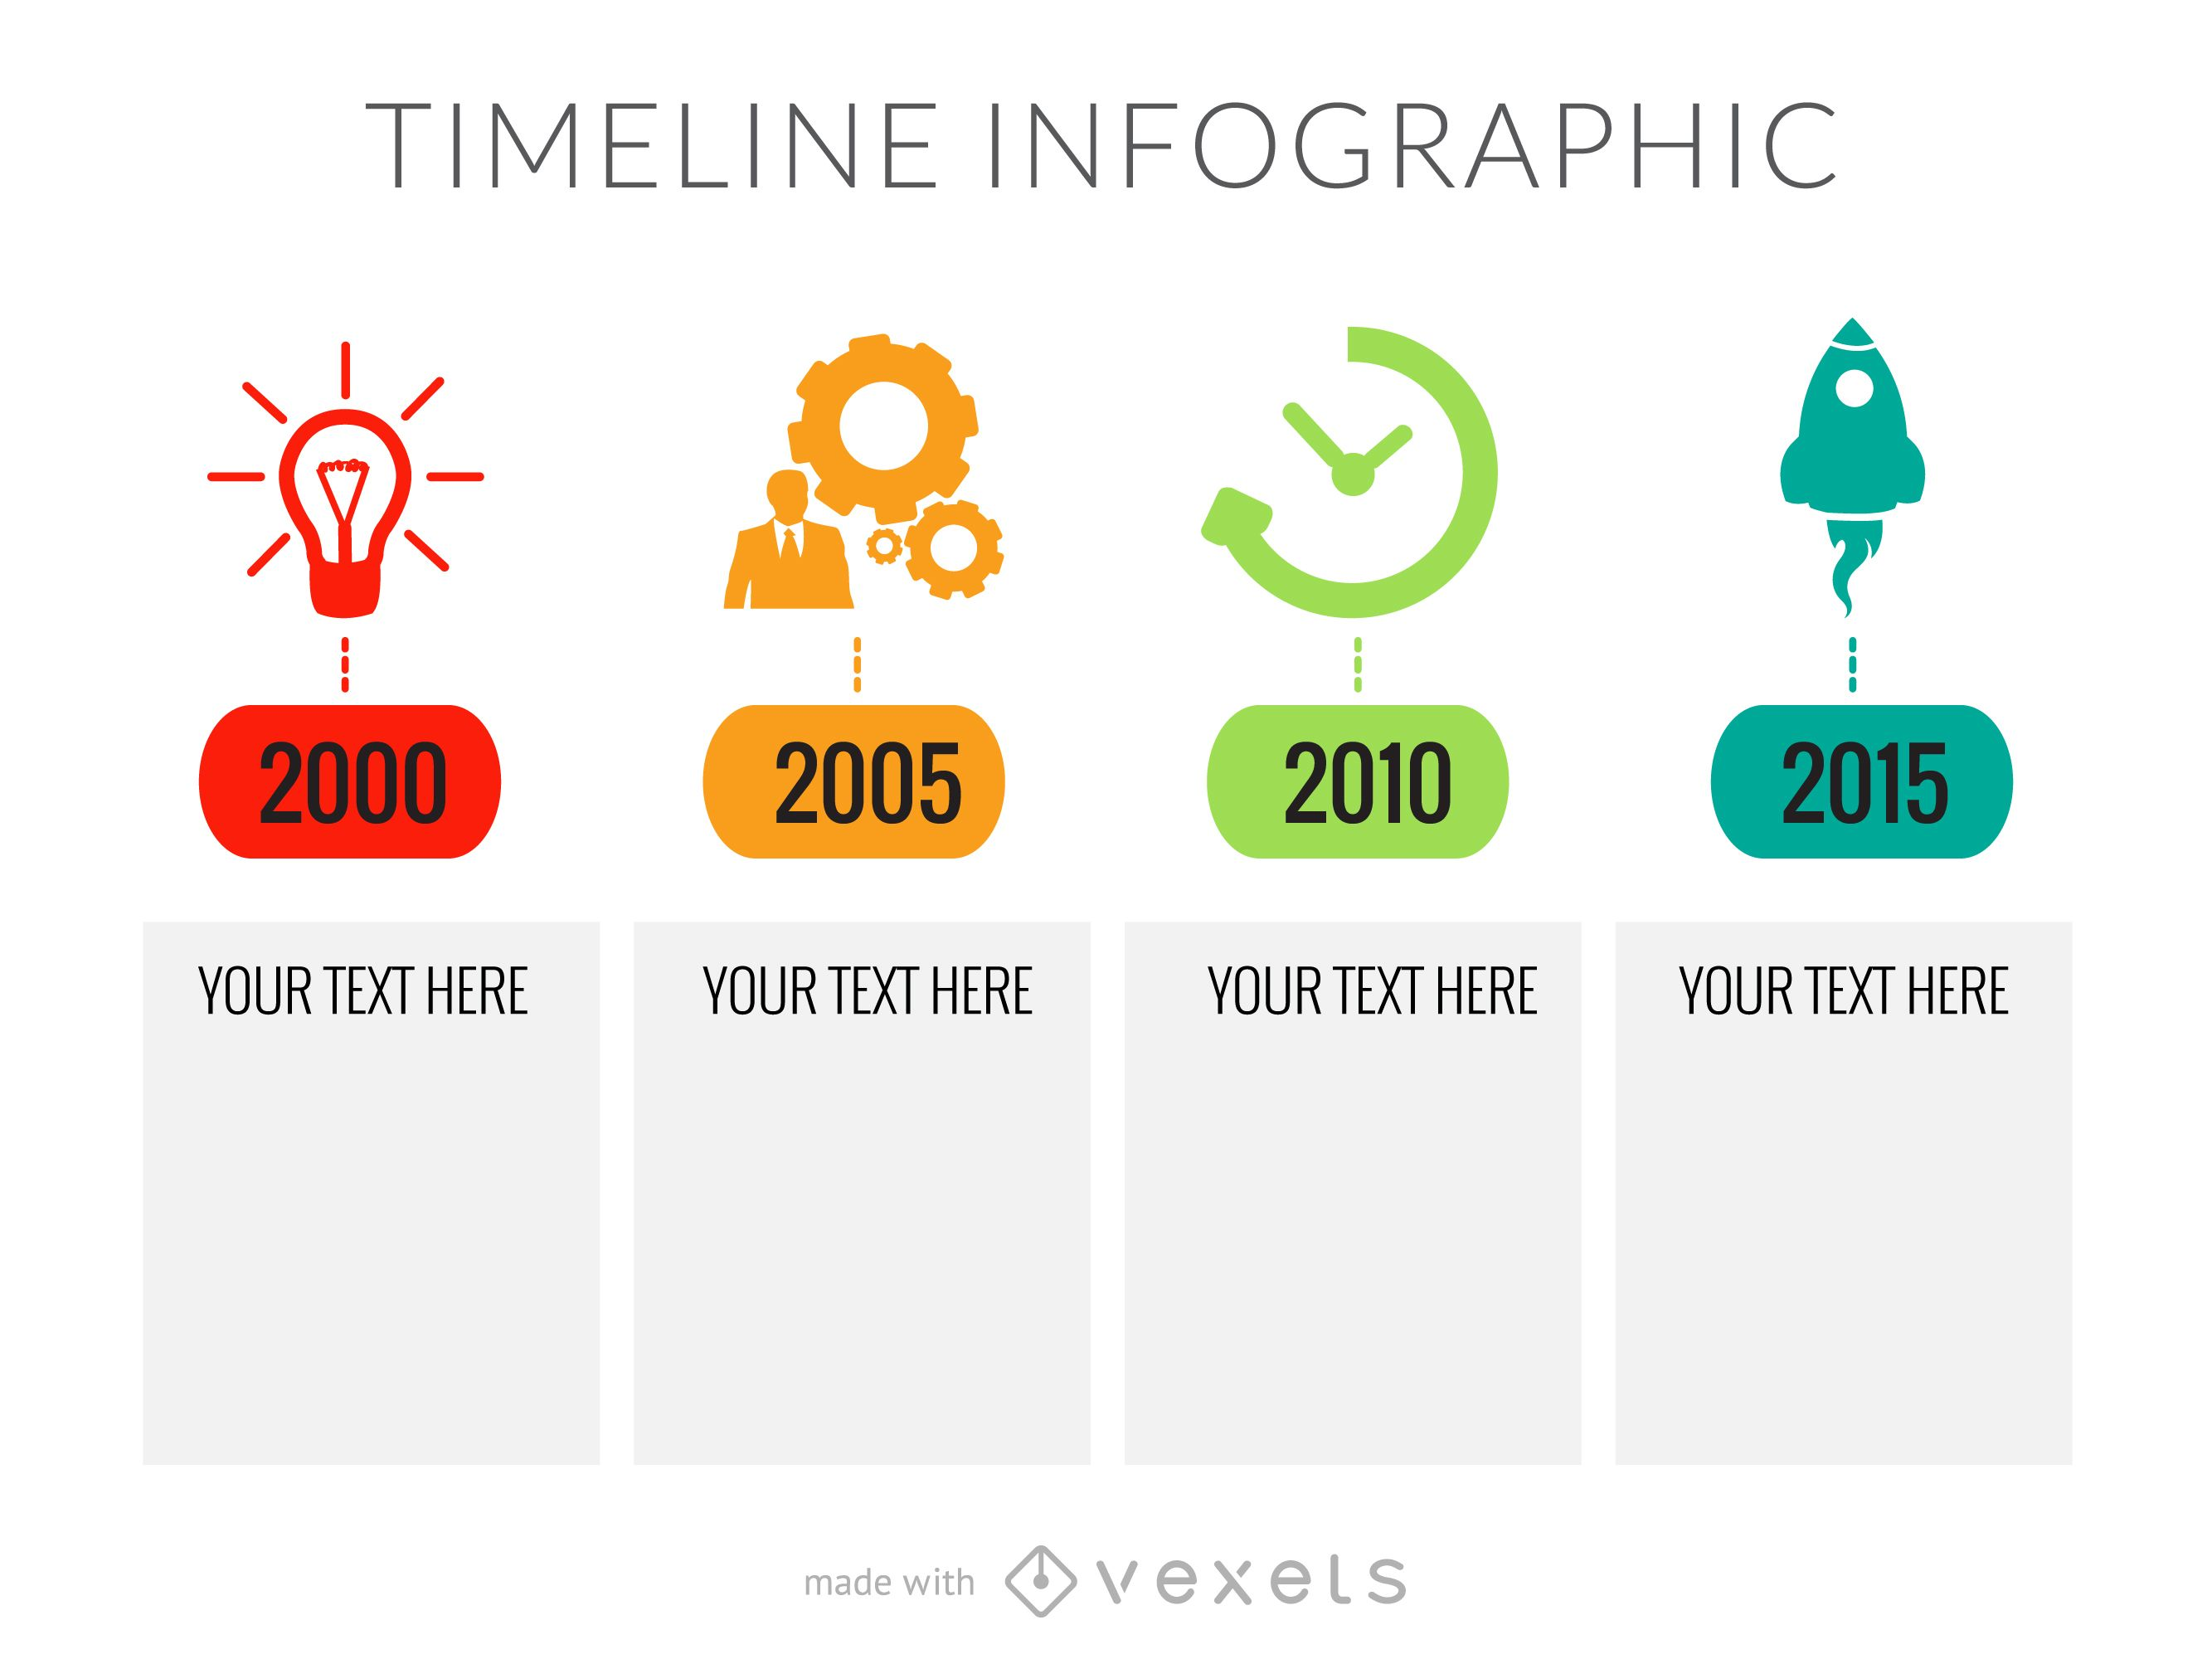 launch timeline infographic maker